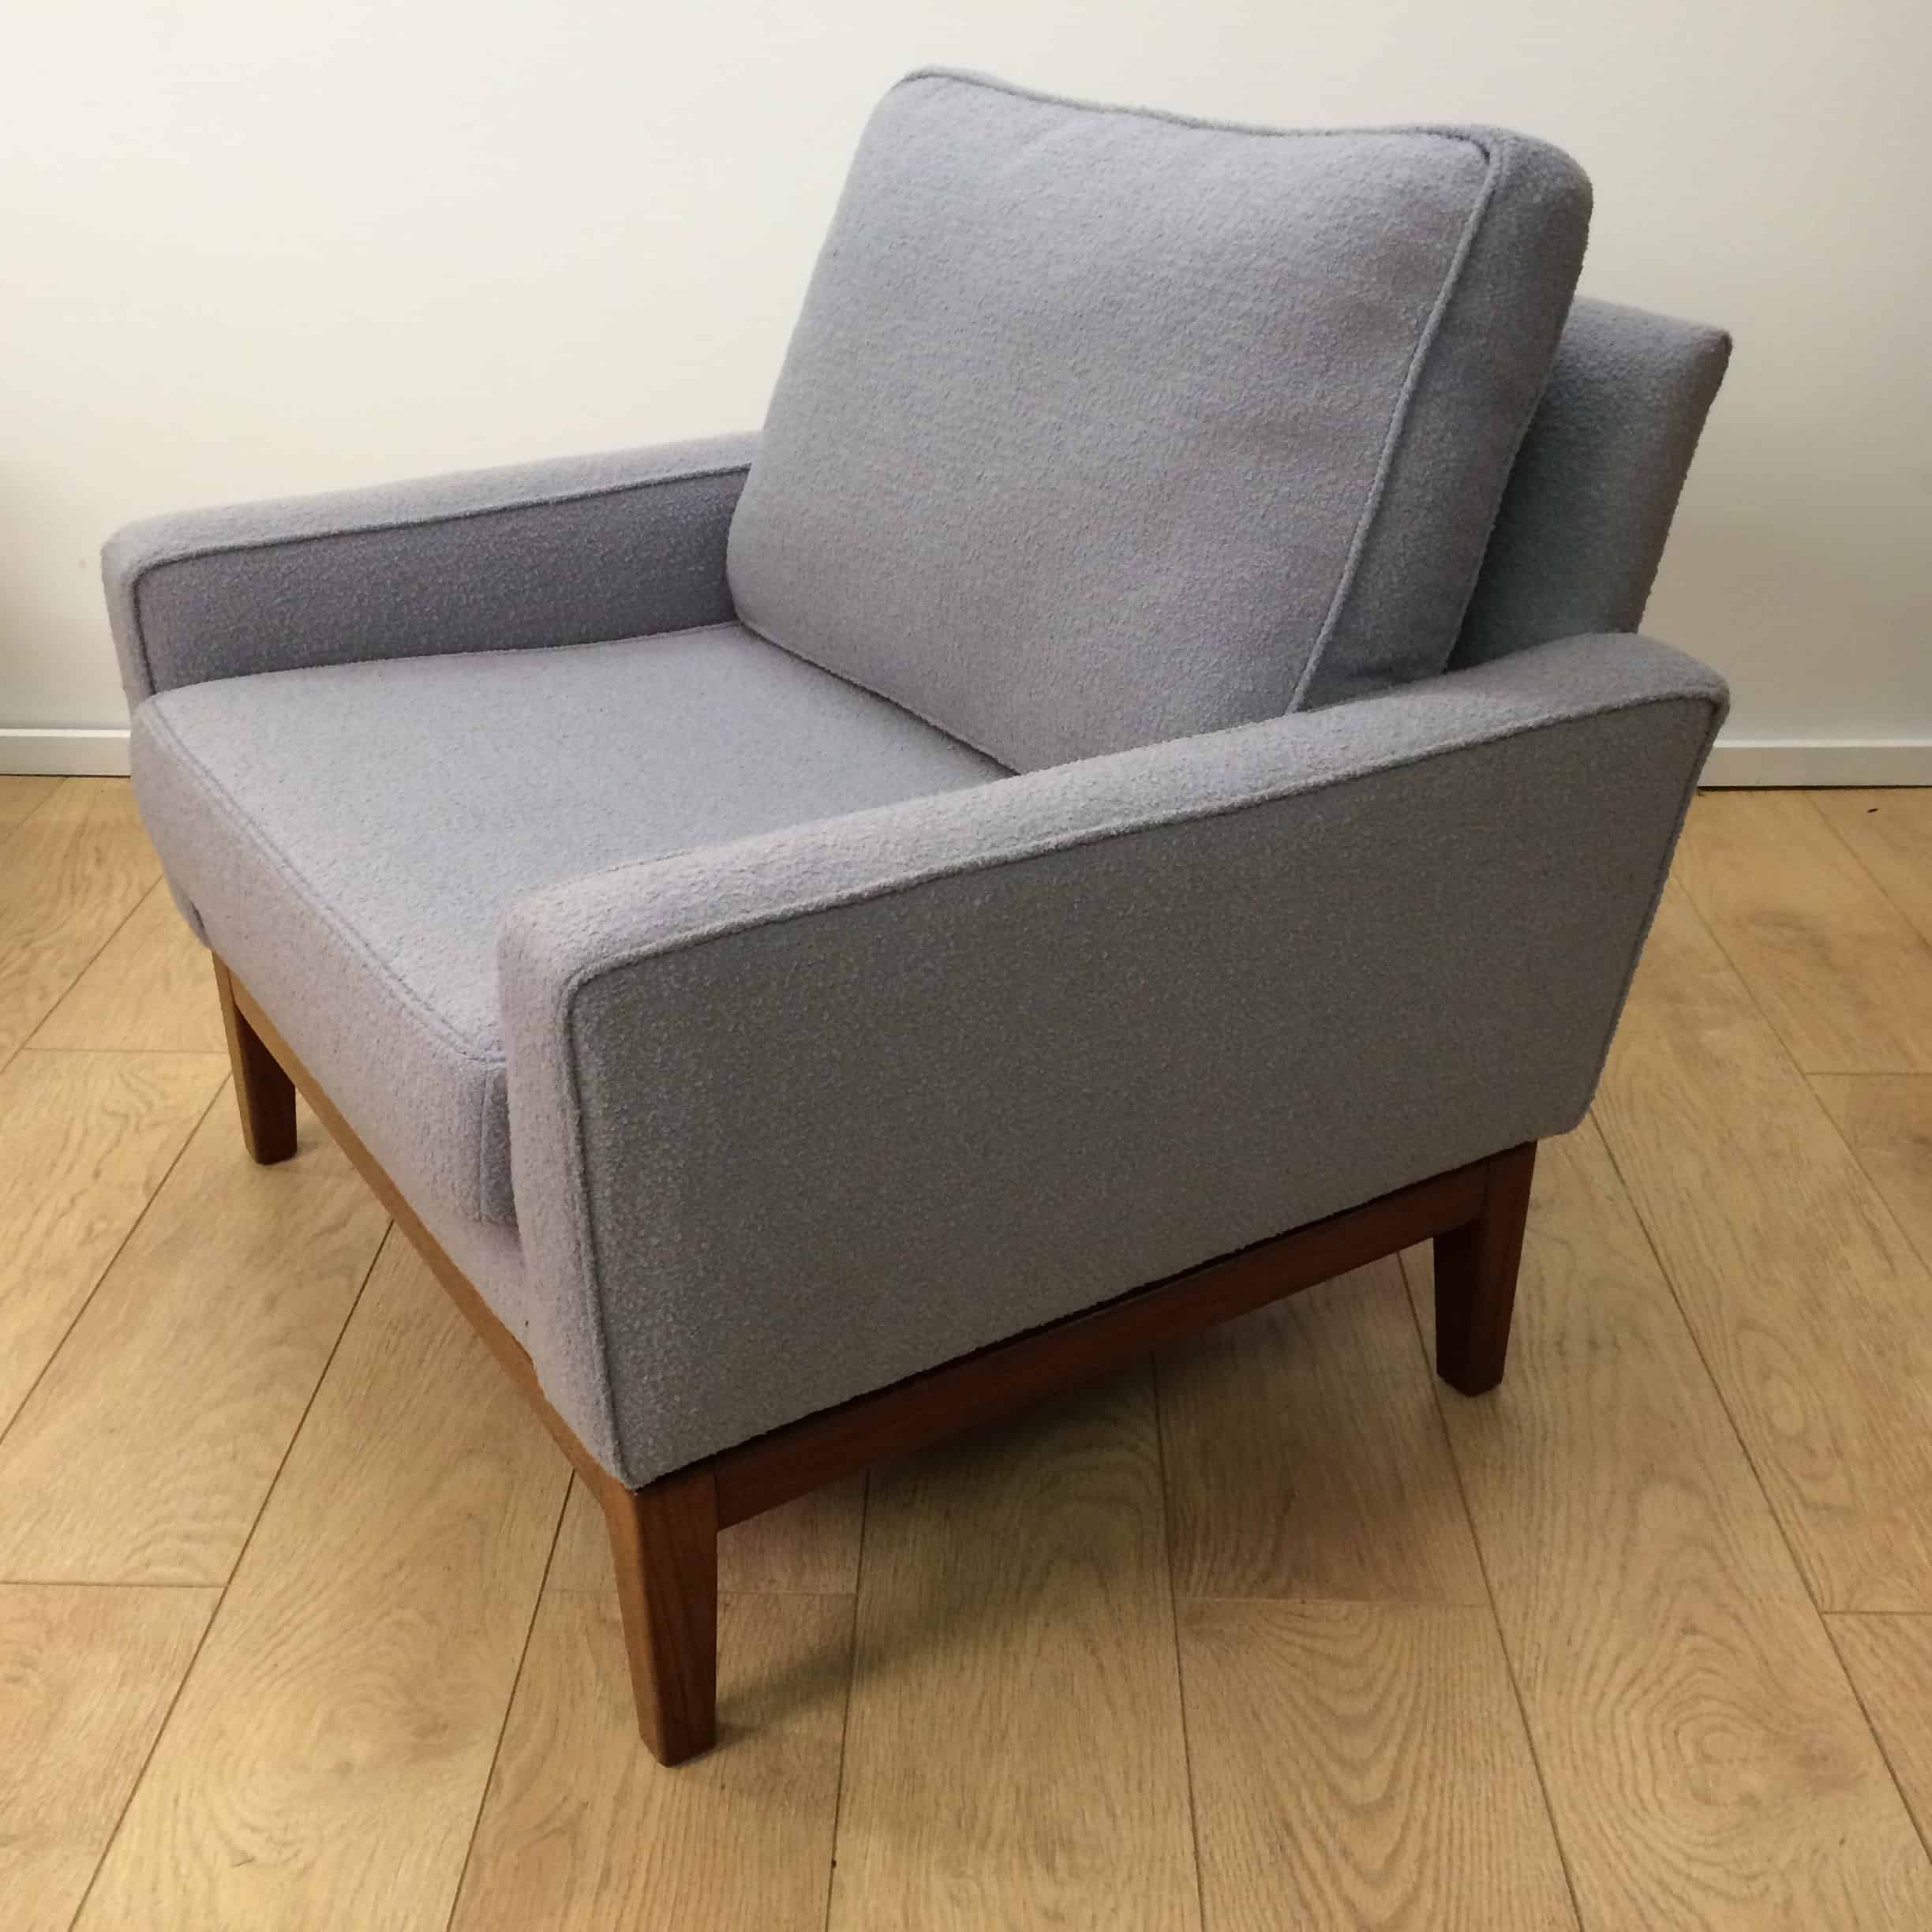 1960s 3 seater sofa by Heals